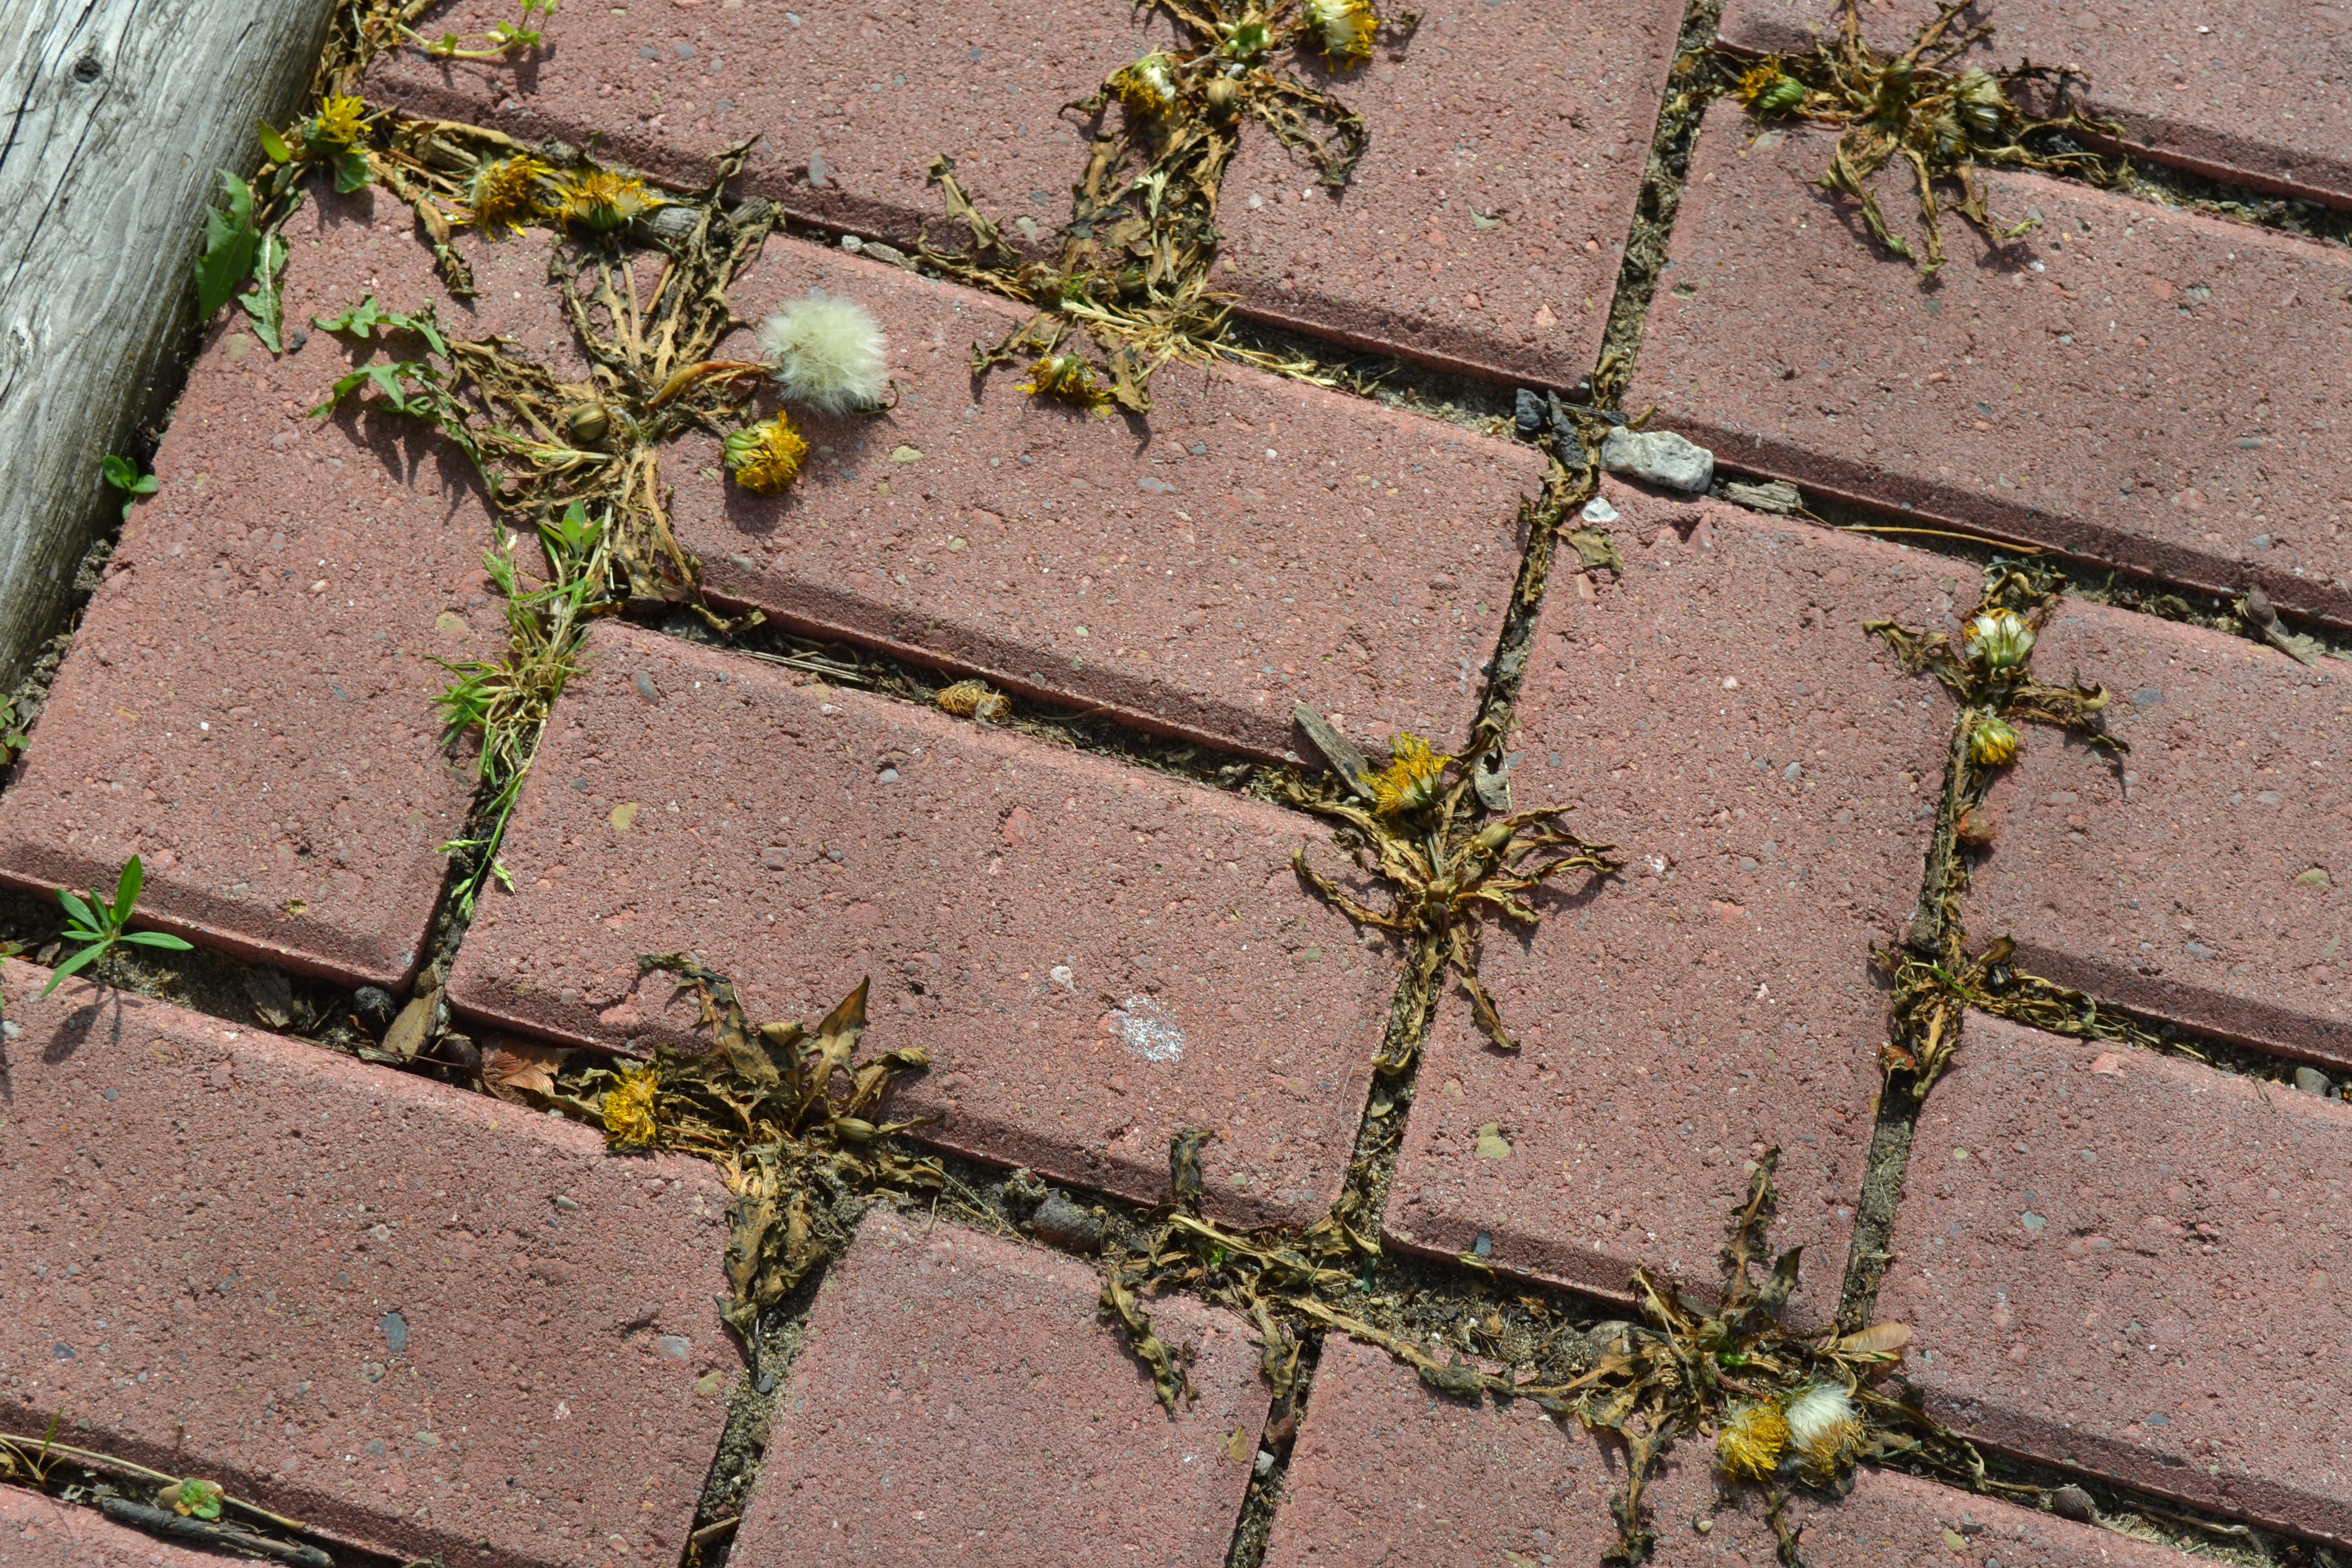 weeds-in-cracks-and-crevices.jpg